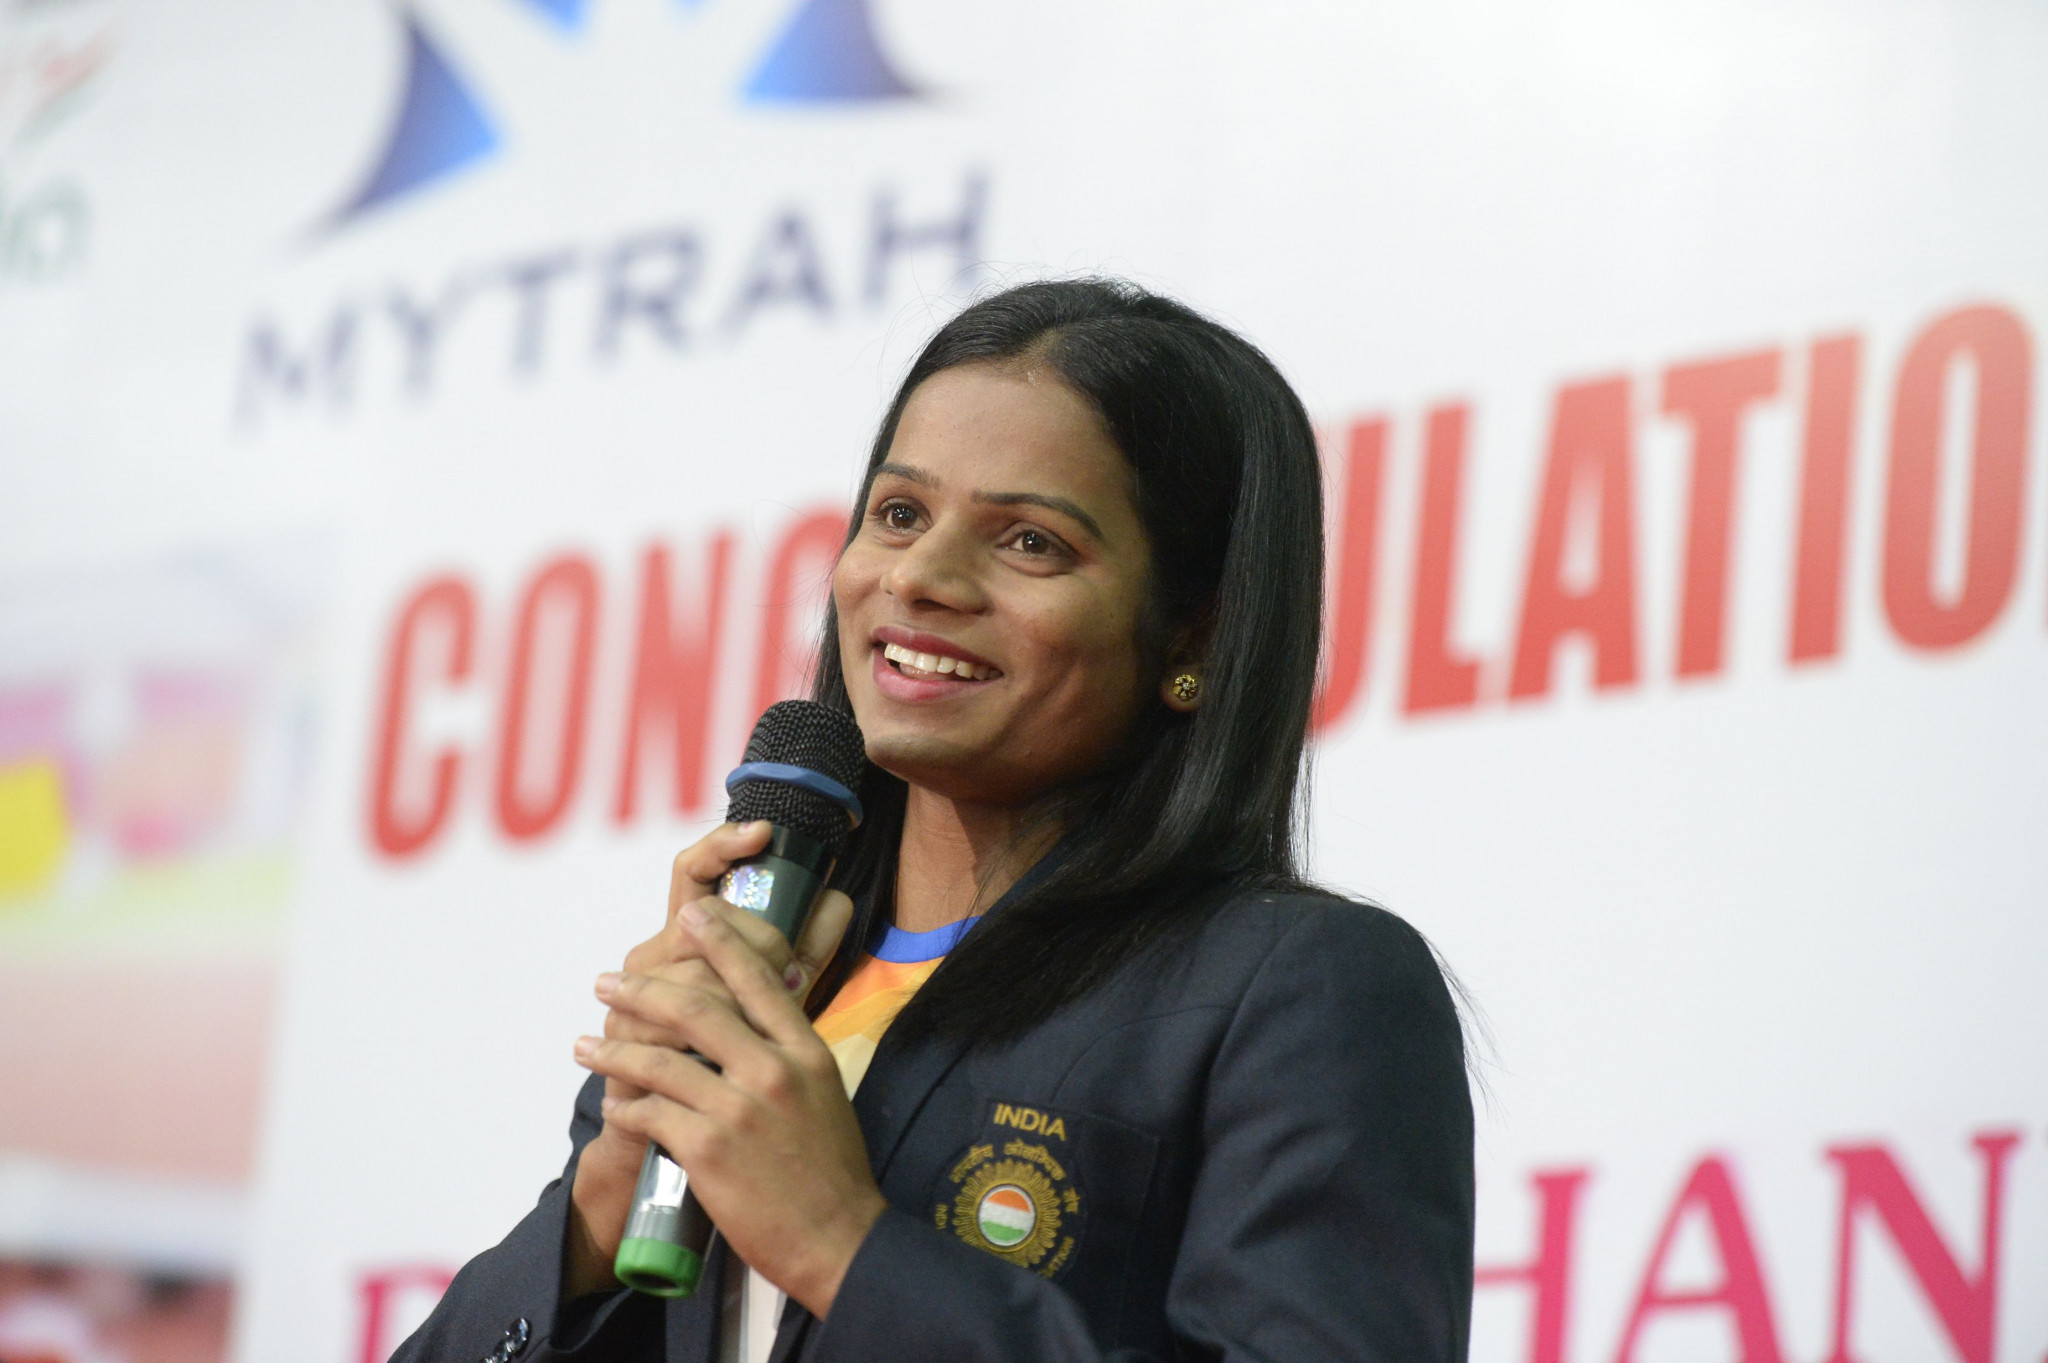 Dutee Chand won Summer Universiade gold last year and earned two Asian Games silver medals in 2018 ©Getty Images